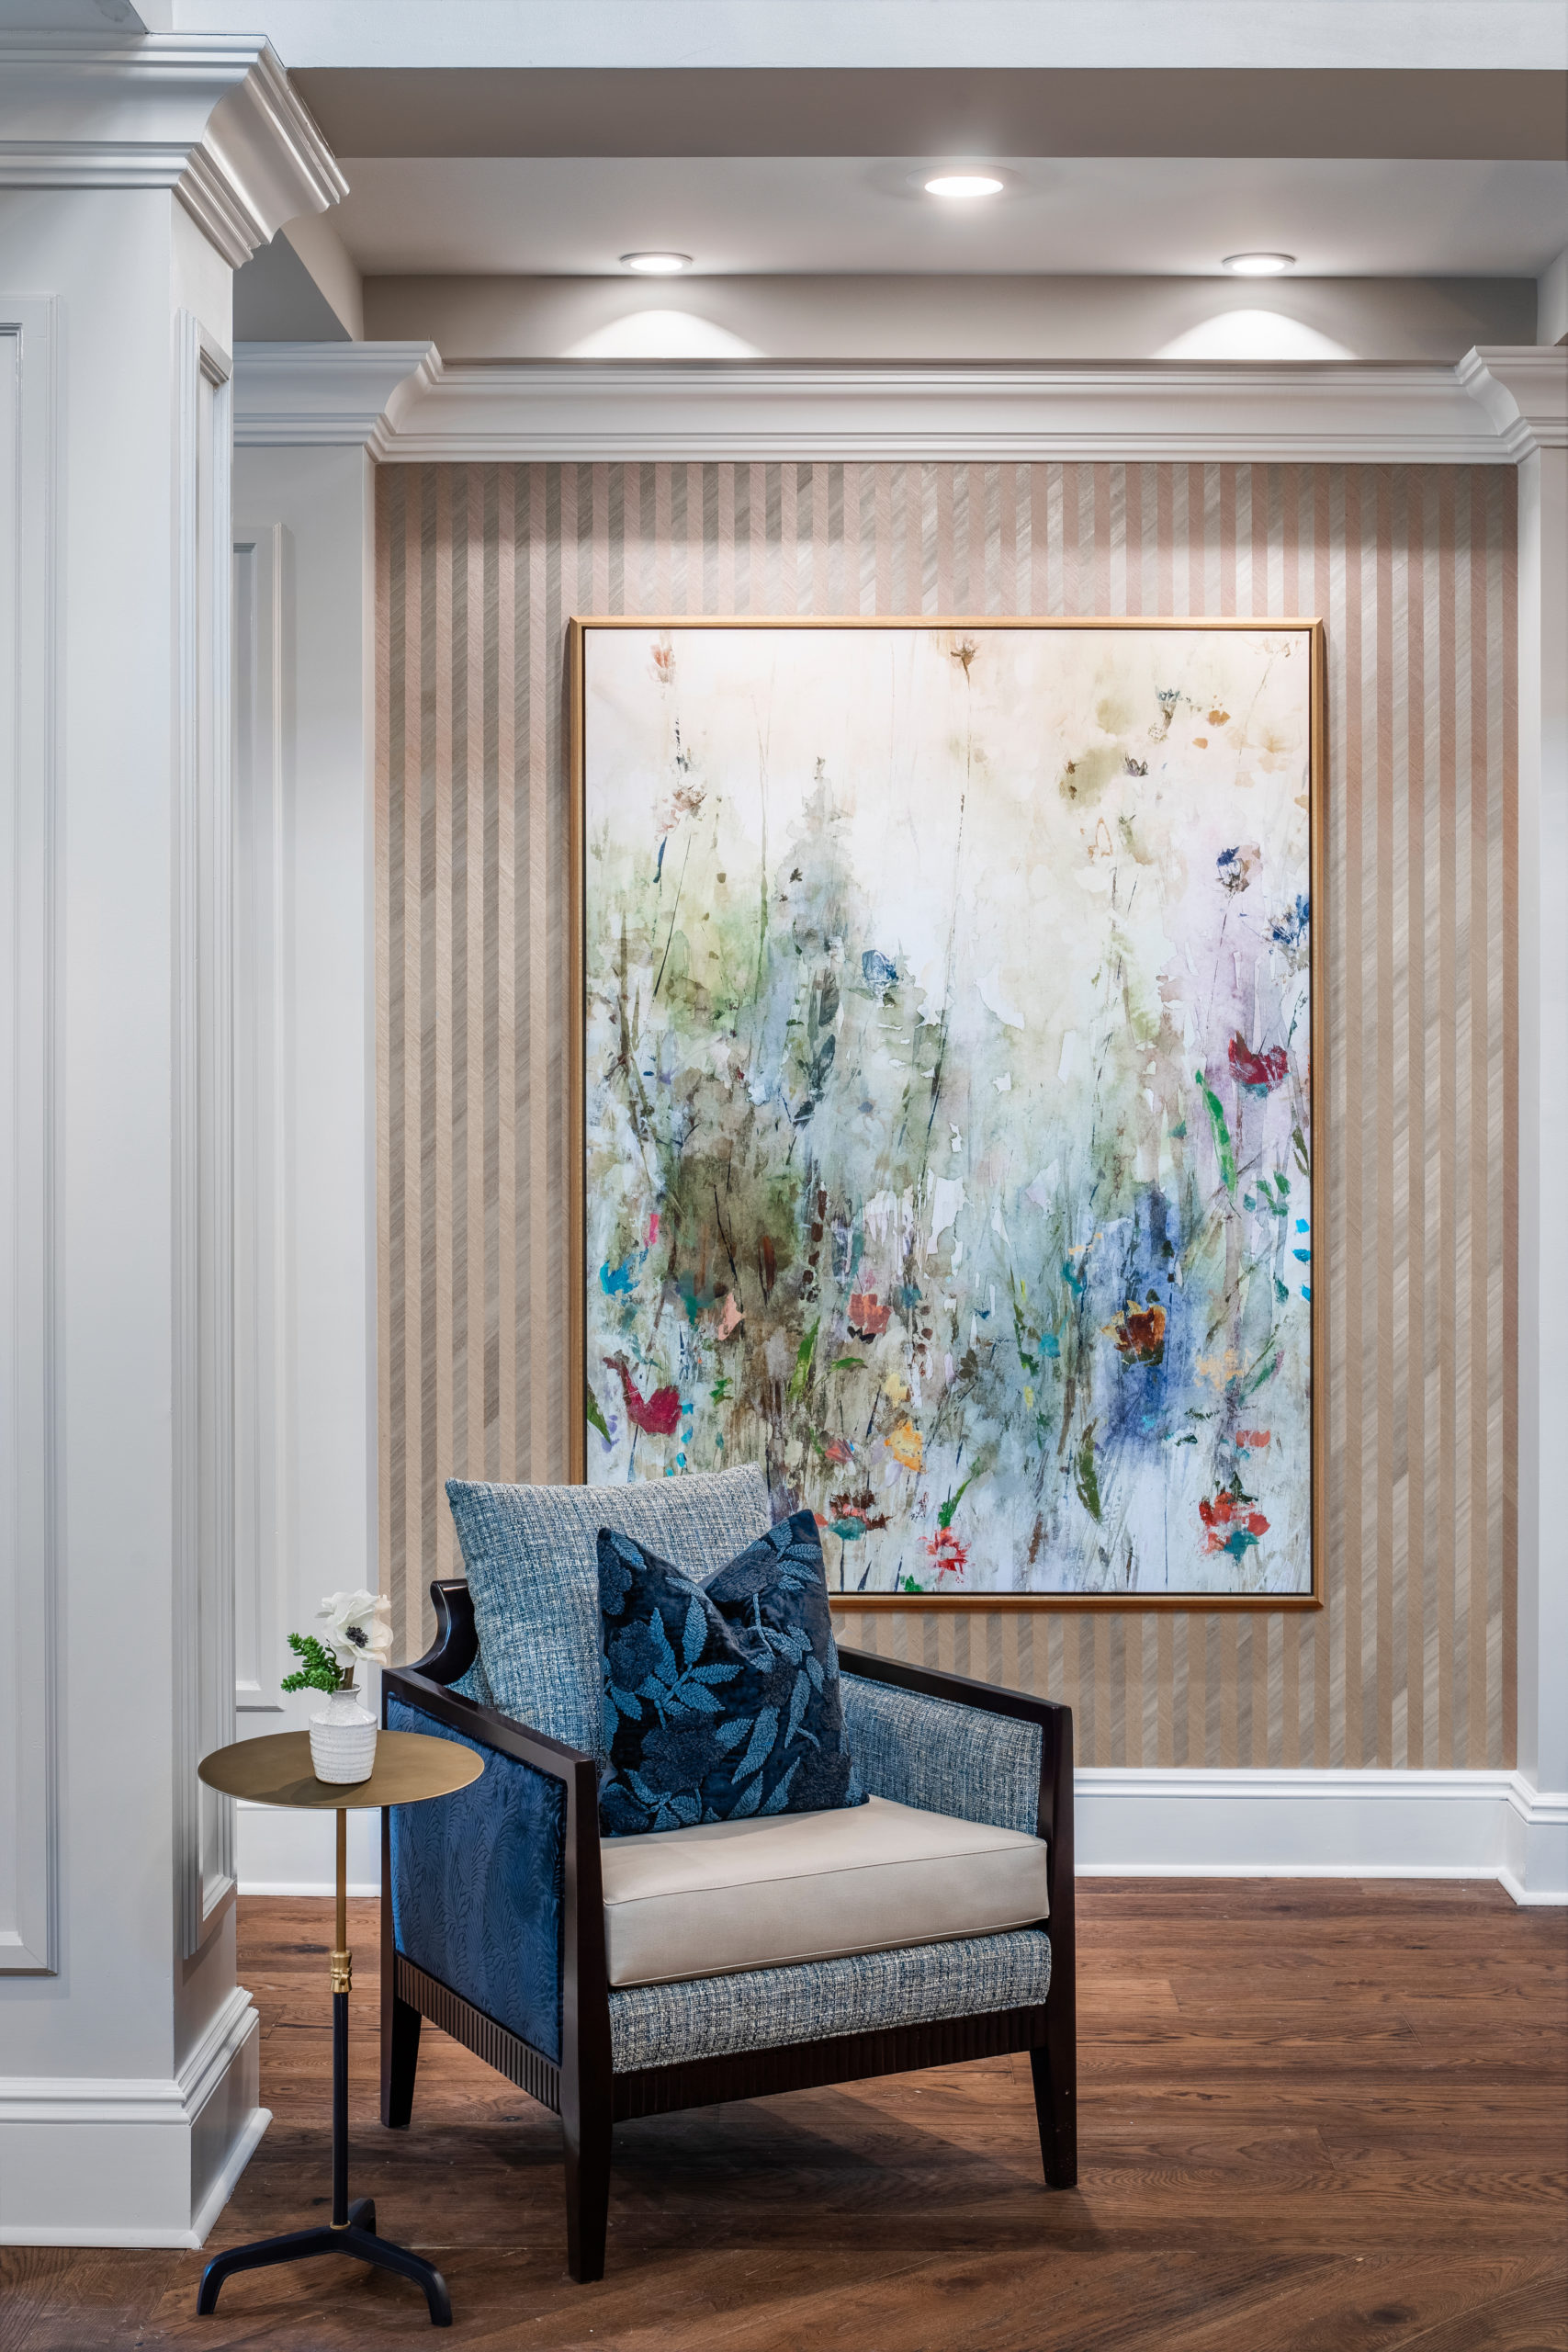 Longleaf common space with blue and tan chair, gold table, flowers in white vase, floral painting on wall behind